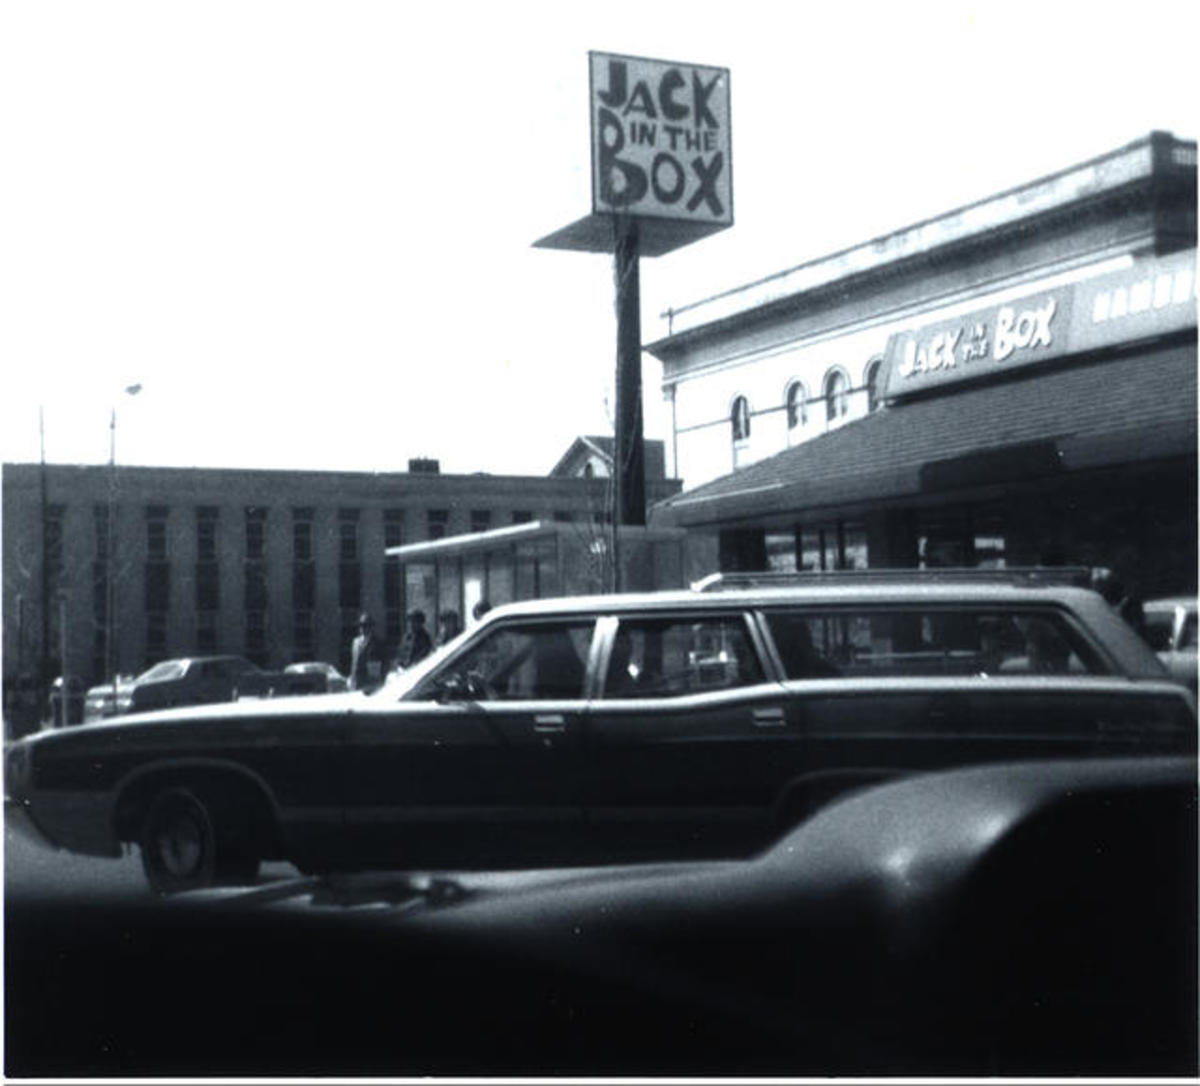 The old Jack in the Box, was at the corner of 3rd & Congress st.